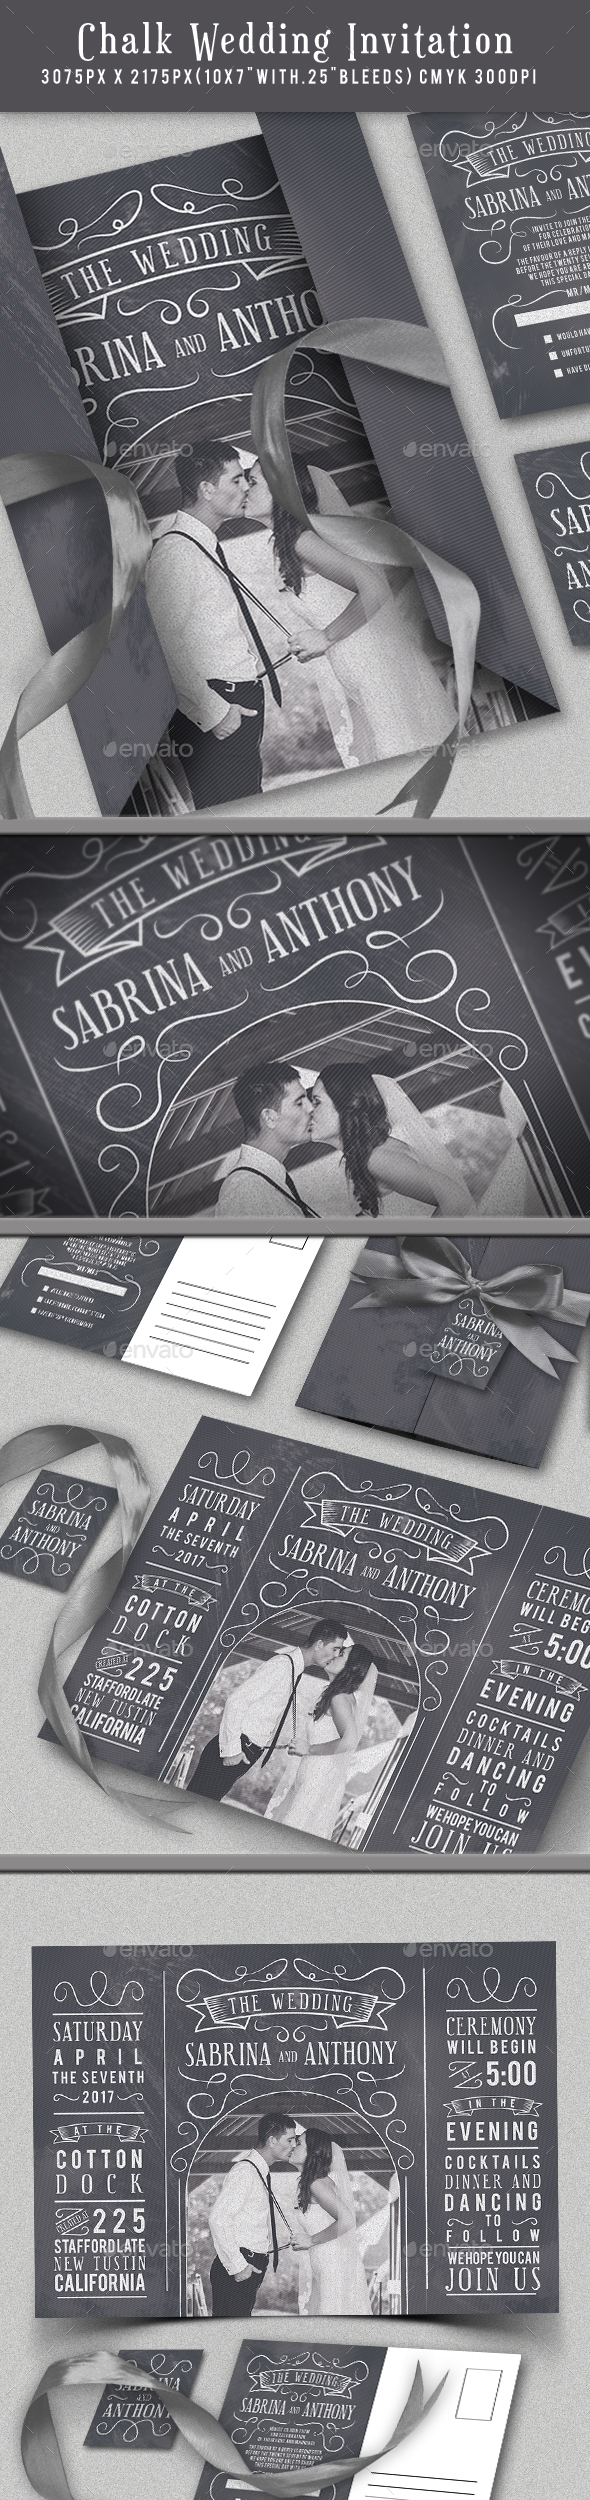 Chalk Wedding Invitation